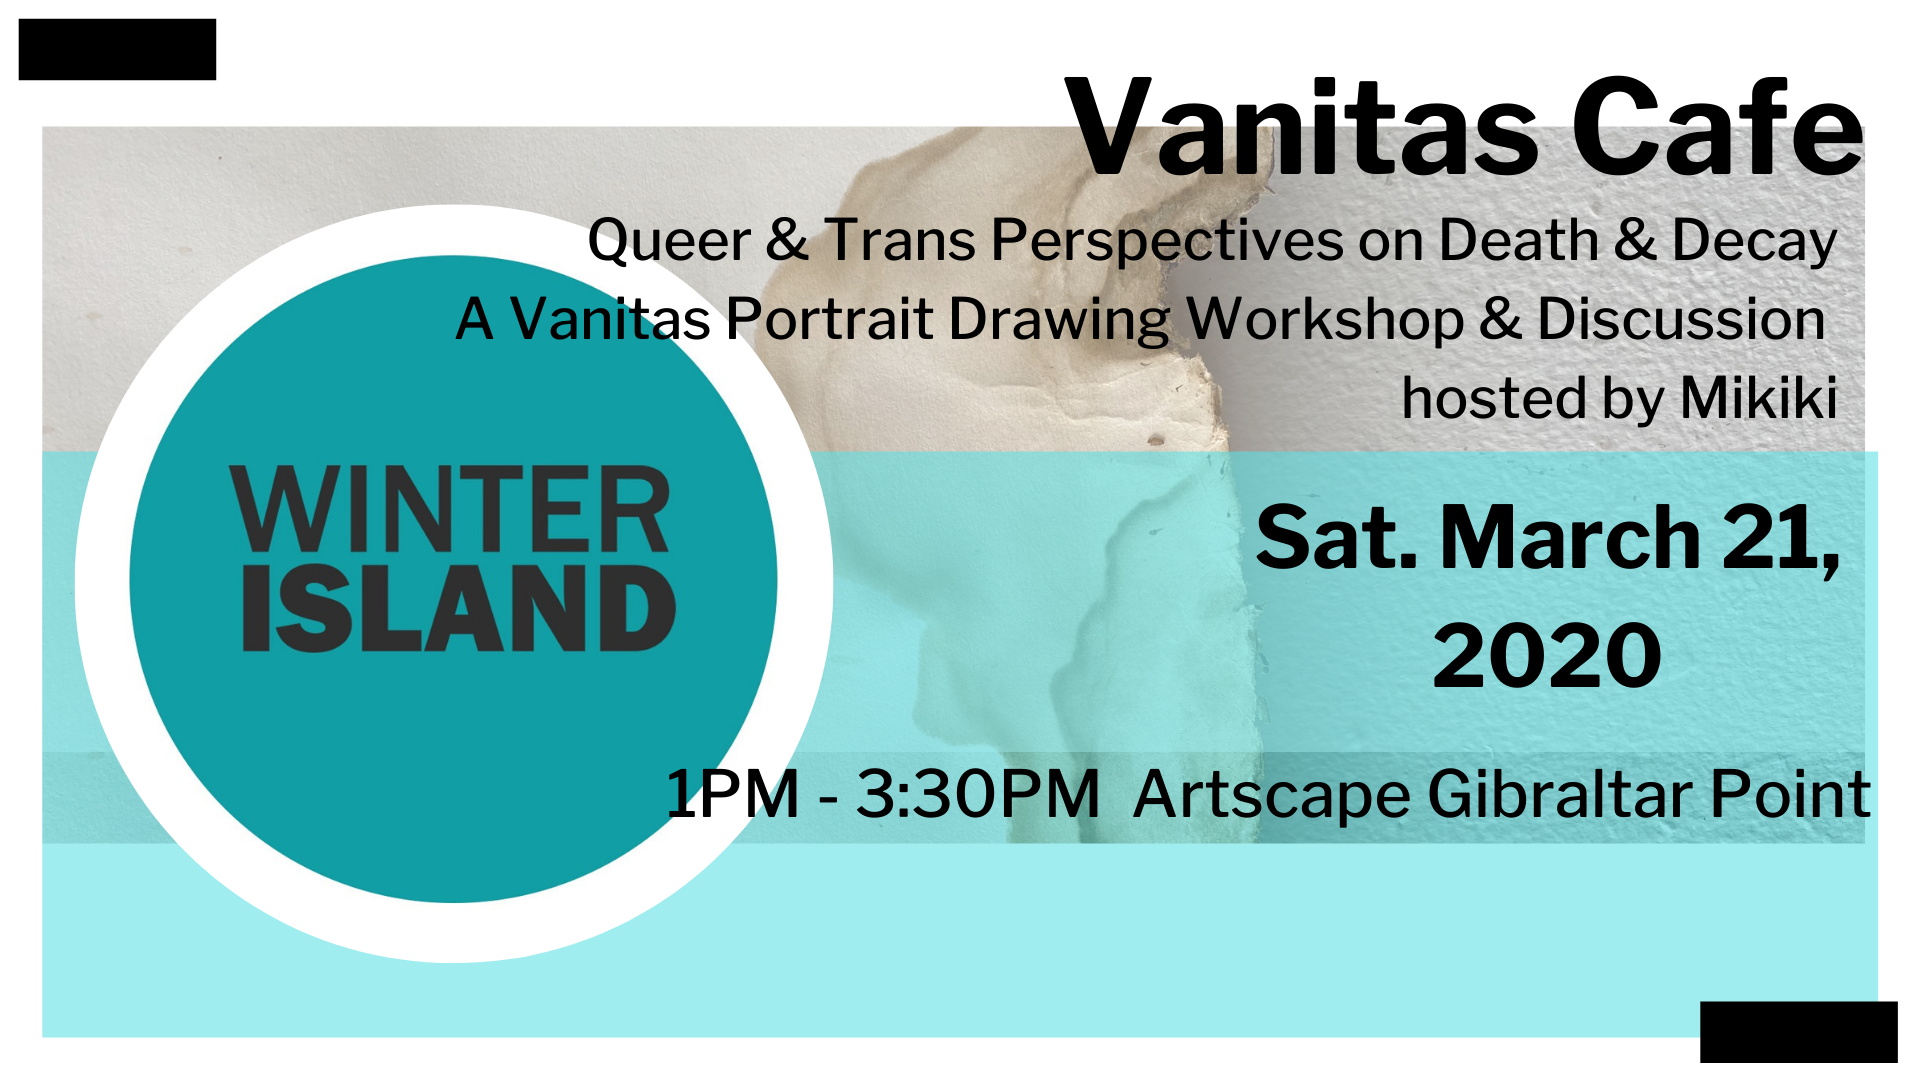 Vanitas Cafe: A Vanitas Drawing & Discussion Workshop